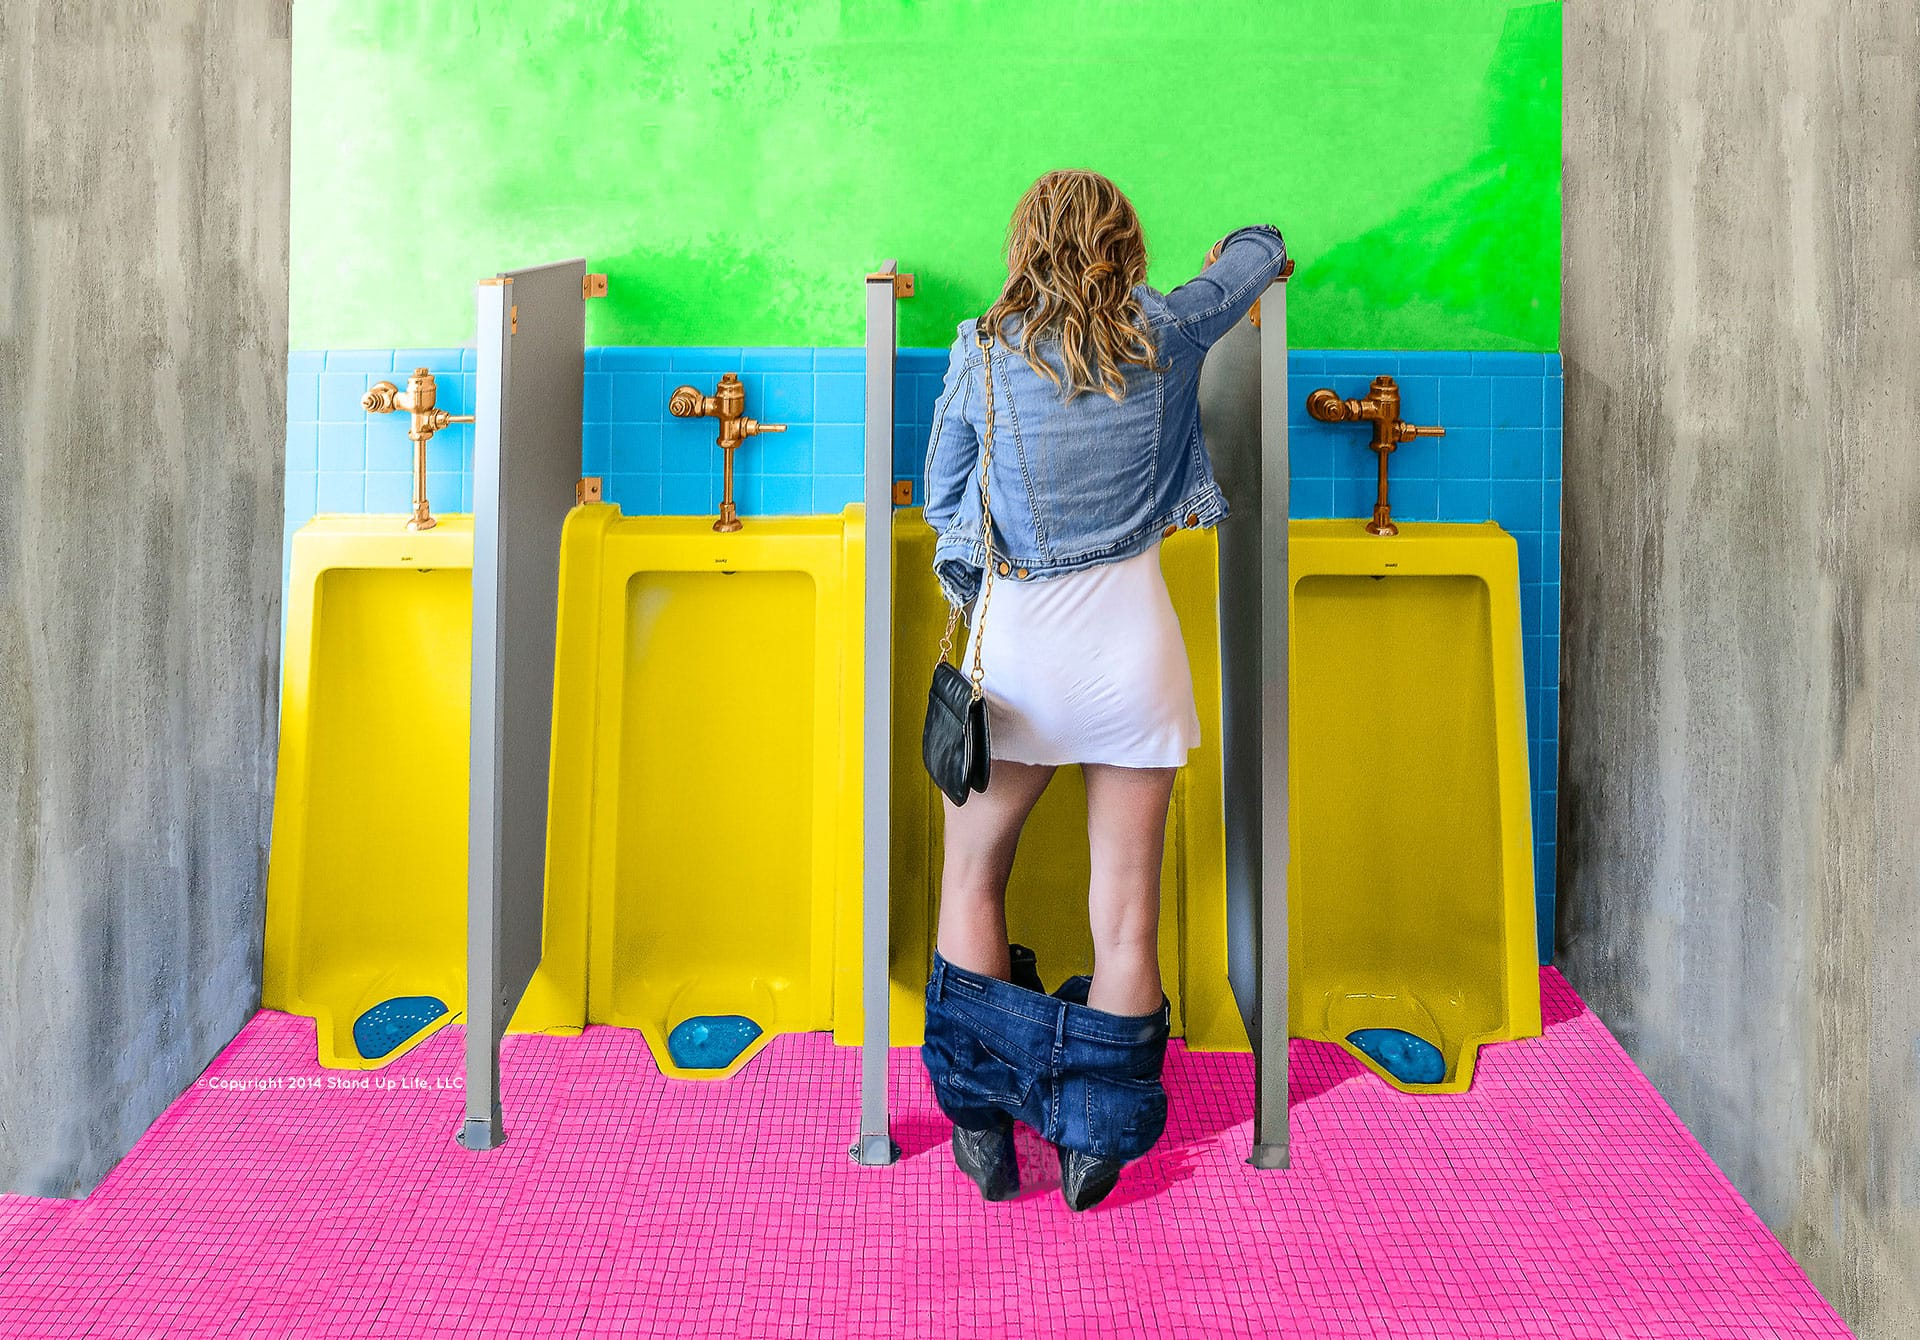 stand up peeing device for women